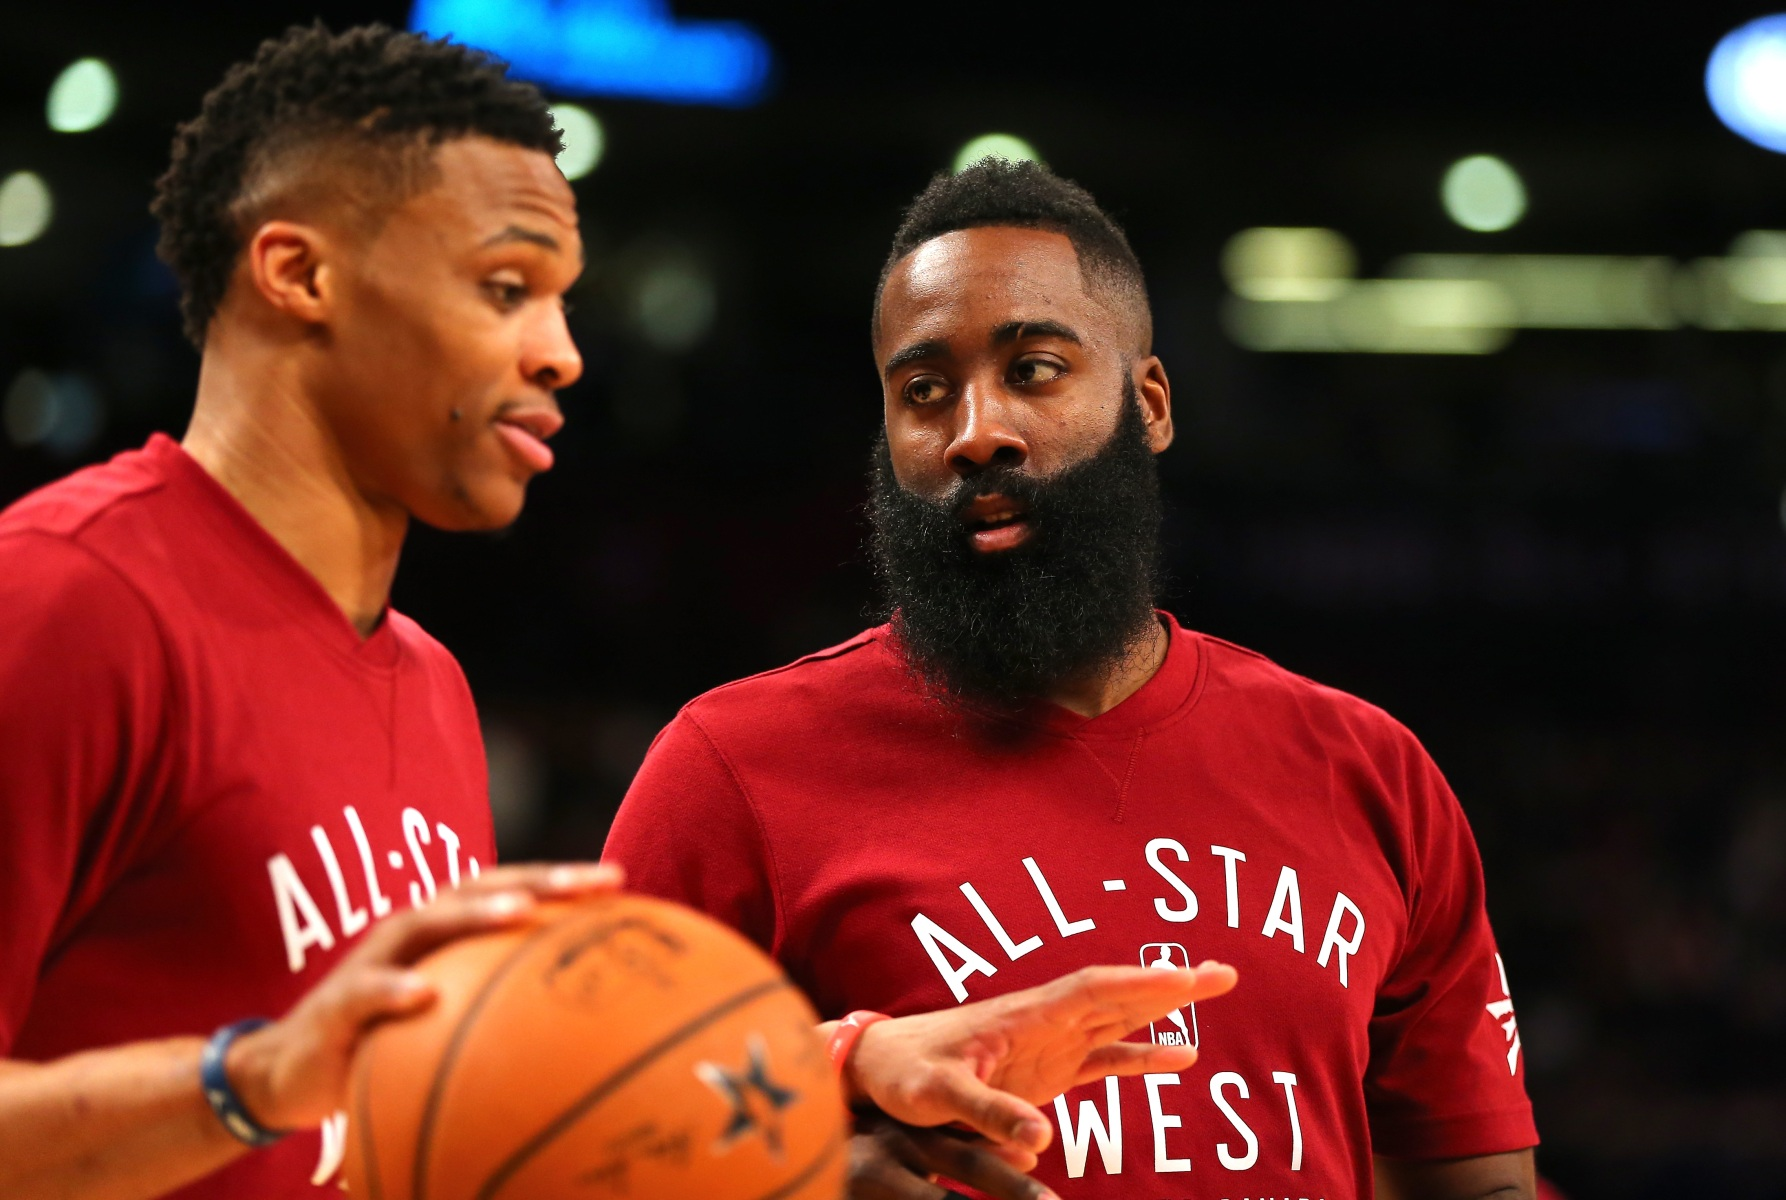 ÙتÙجة بحث اÙصÙر ع٠âªrussell westbrook and james harden rocketsâ¬â